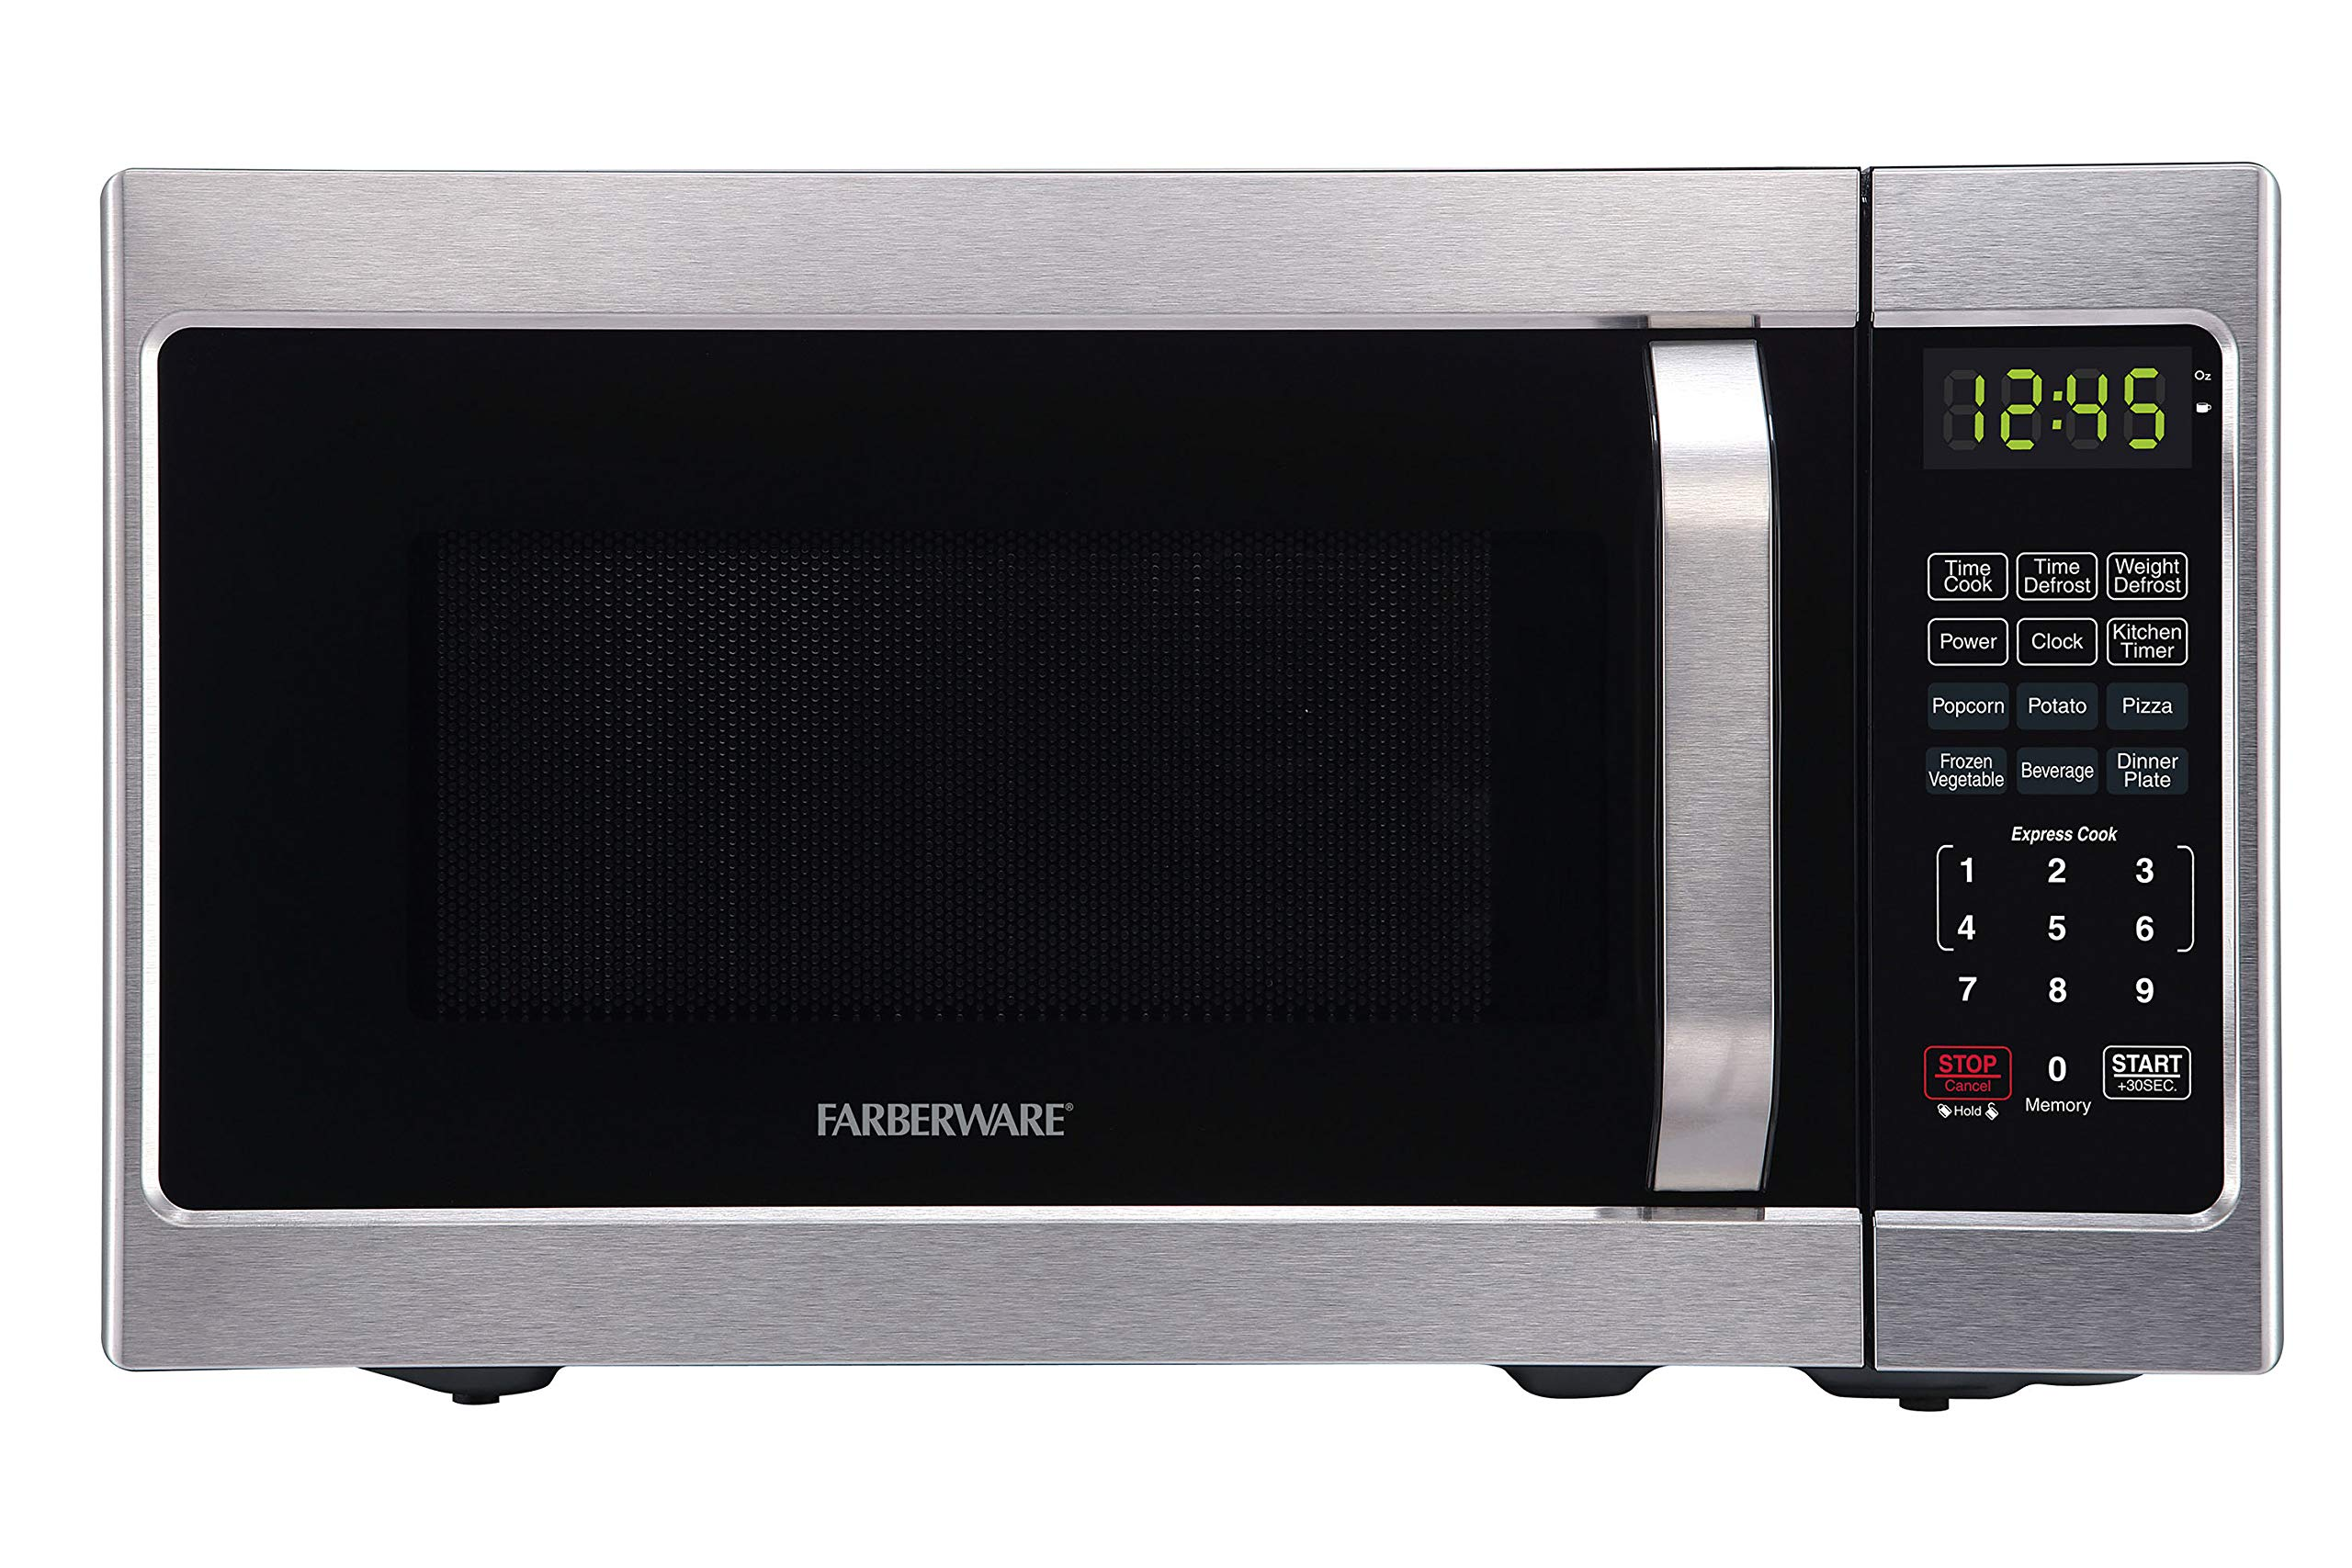 Farberware Classic FMO07AHTBKJ 0.7 Cu. Ft. 700-Watt Microwave Oven with LED Lighting, Brushed Stainless Steel by Farberware